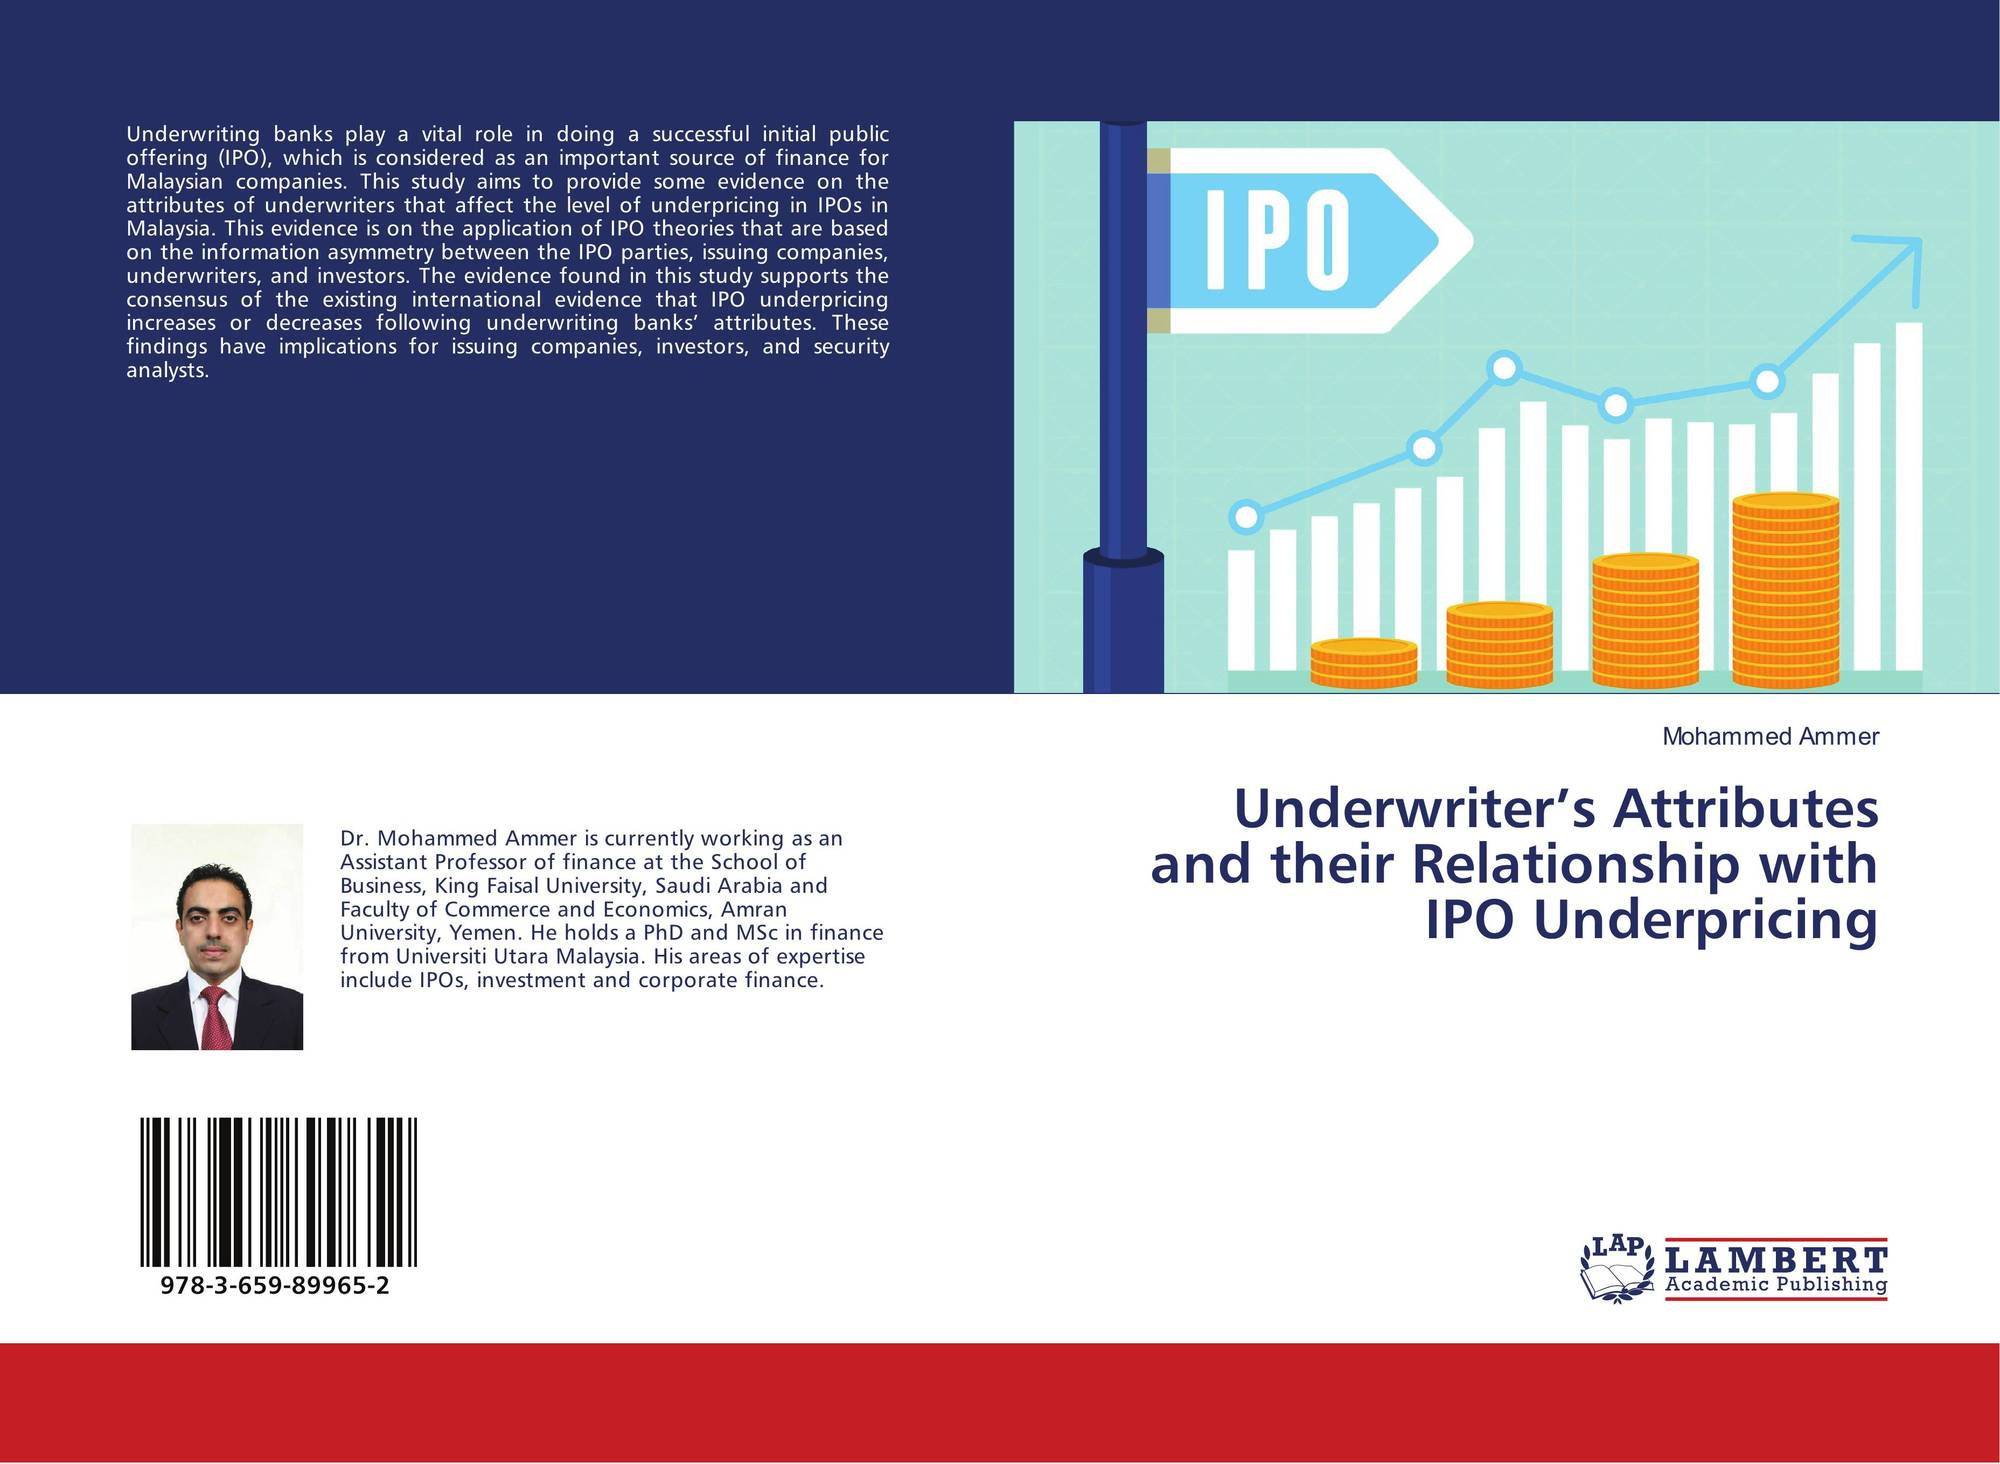 theories of ipo pricing and grading Theories of ipo under-pricing have explained different dimensions of under pricing asymmetric information, ownership and control, institutional basis and investor's behavioural explanations are major.